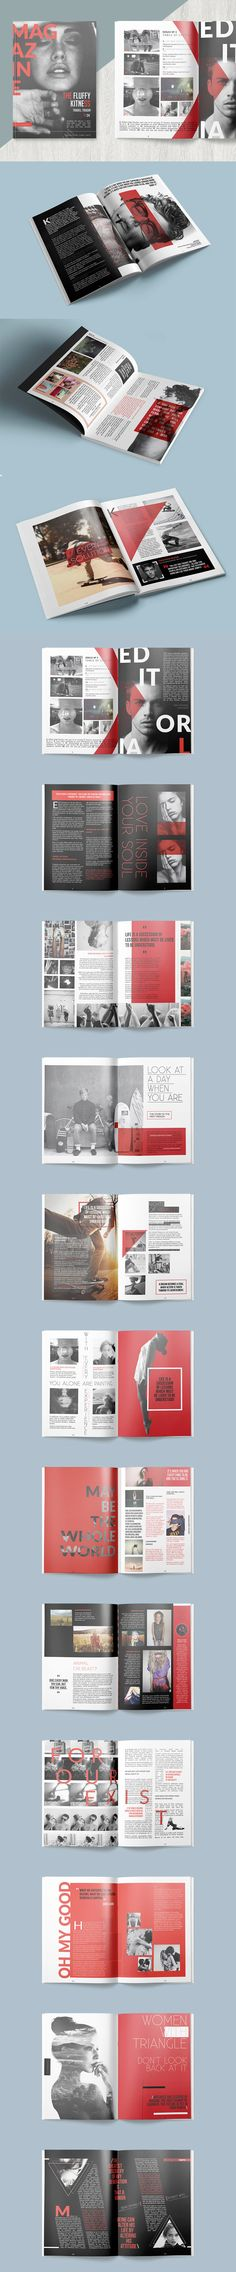 Magazine Template InDesign INDD - 30 Unique Pages